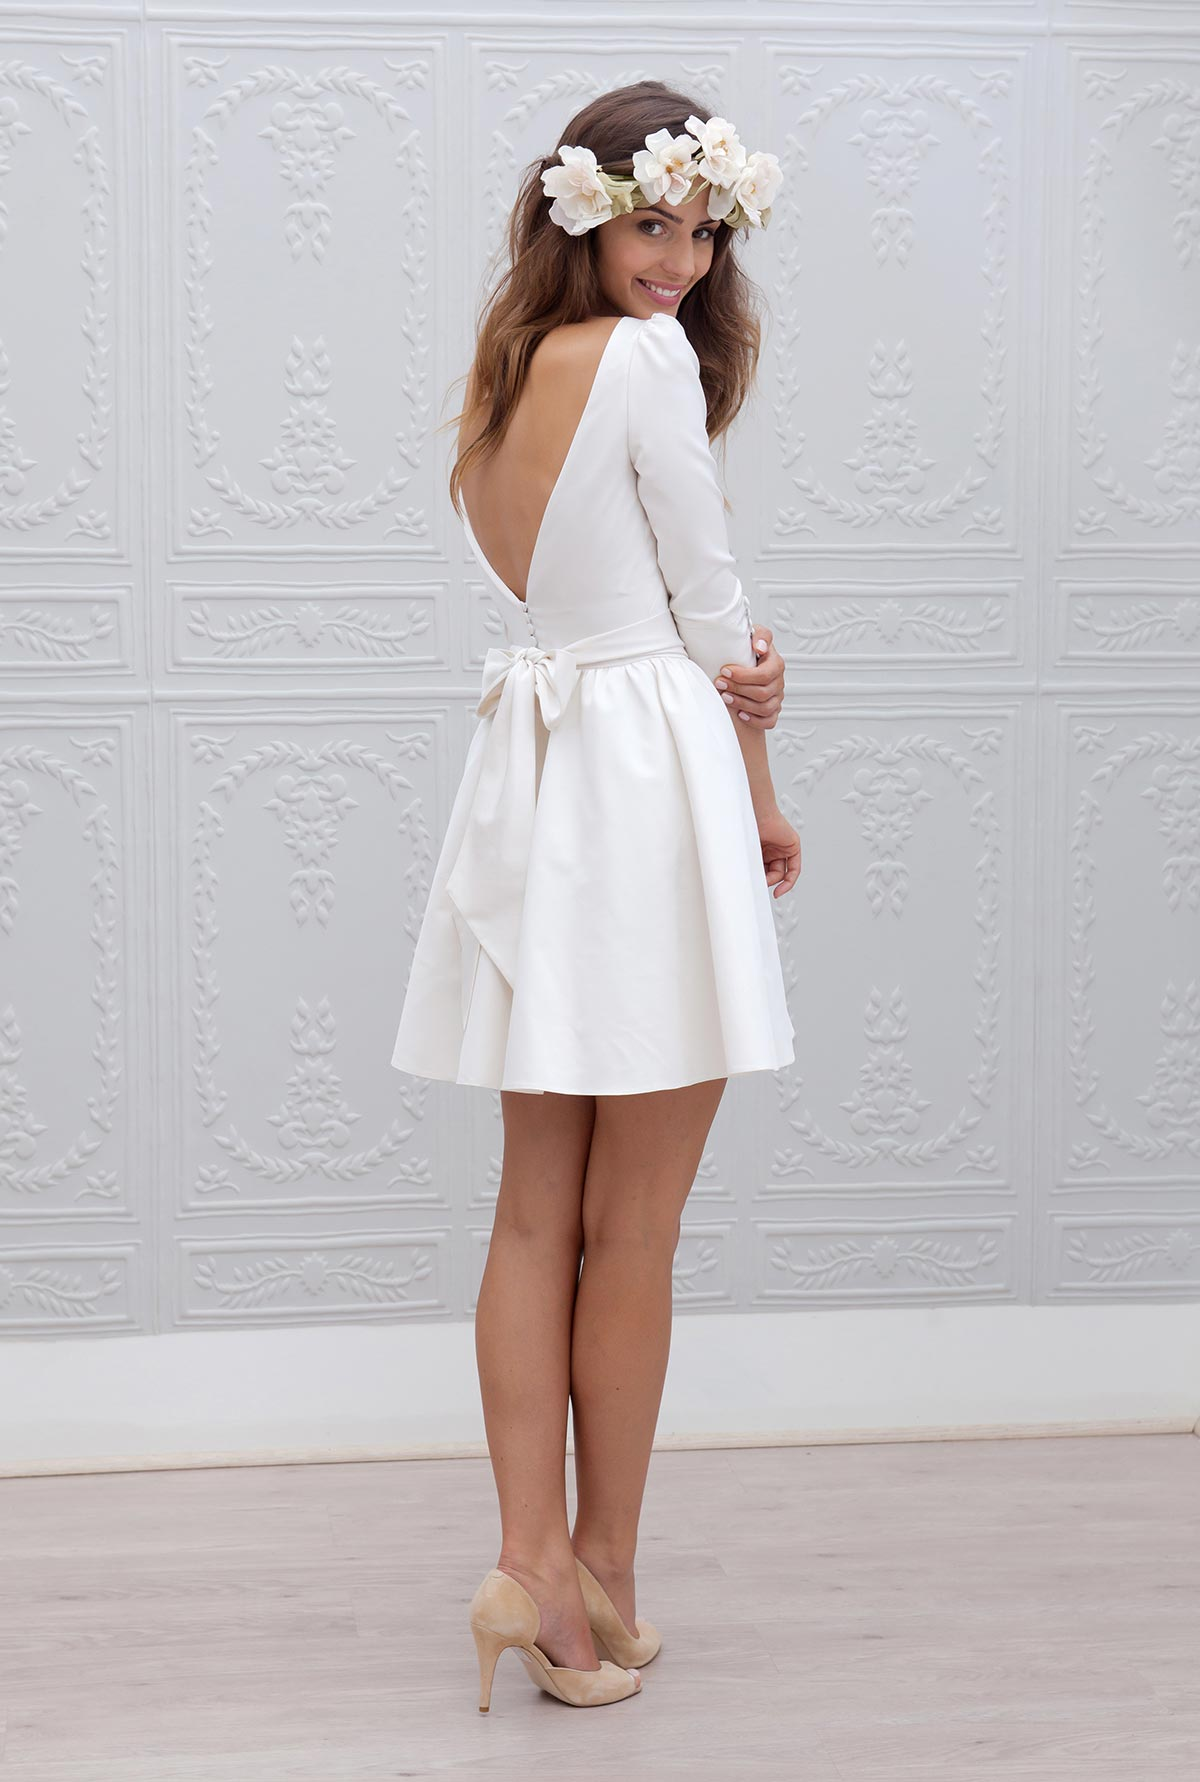 Kate_2dos-marie-laporte-creatrice-collection-2015